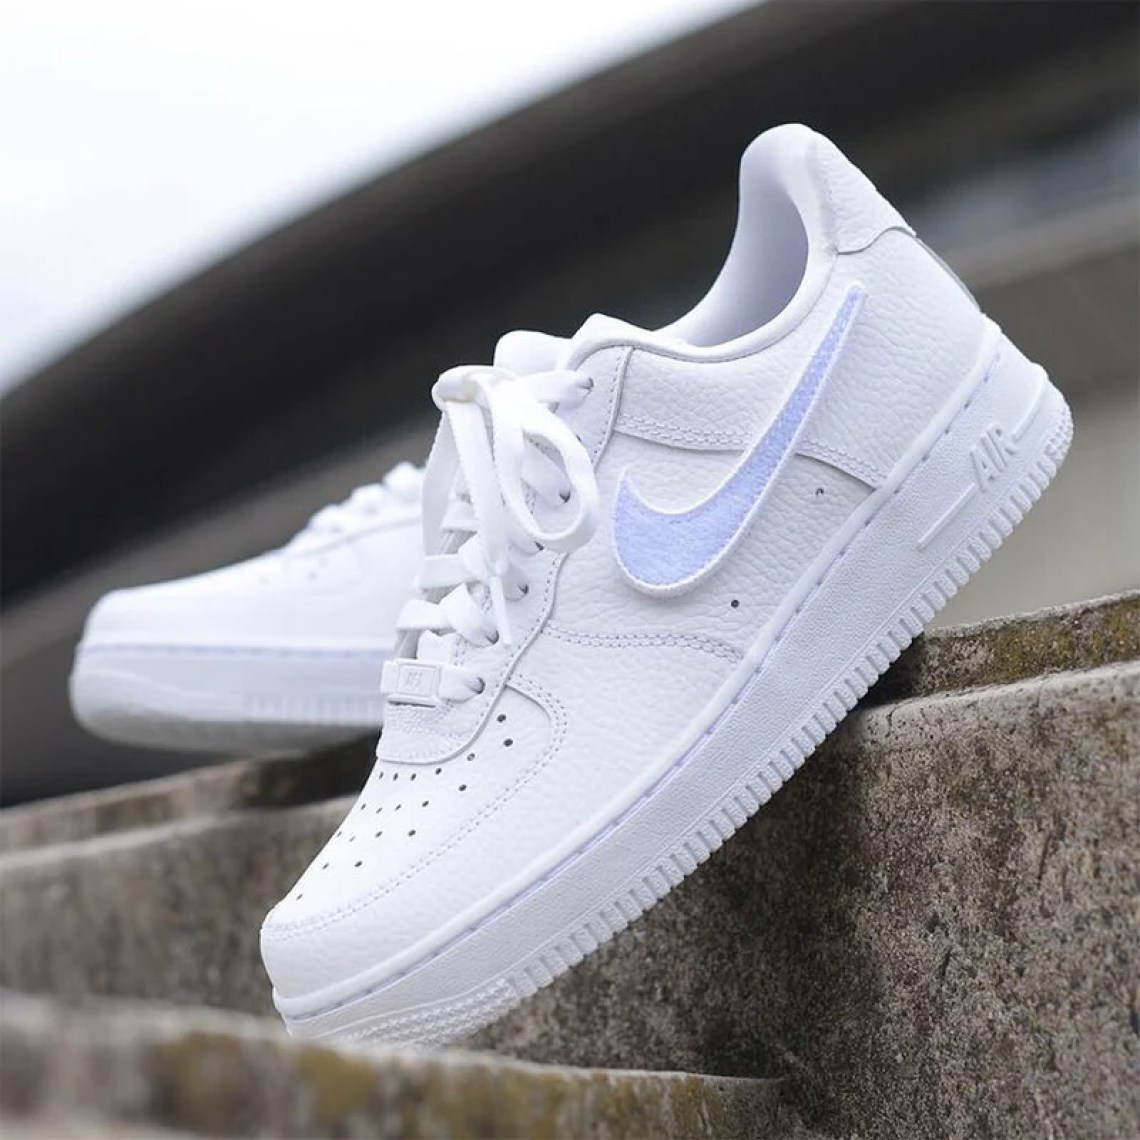 nike air force 1 100 for women features removable swoosh. Black Bedroom Furniture Sets. Home Design Ideas